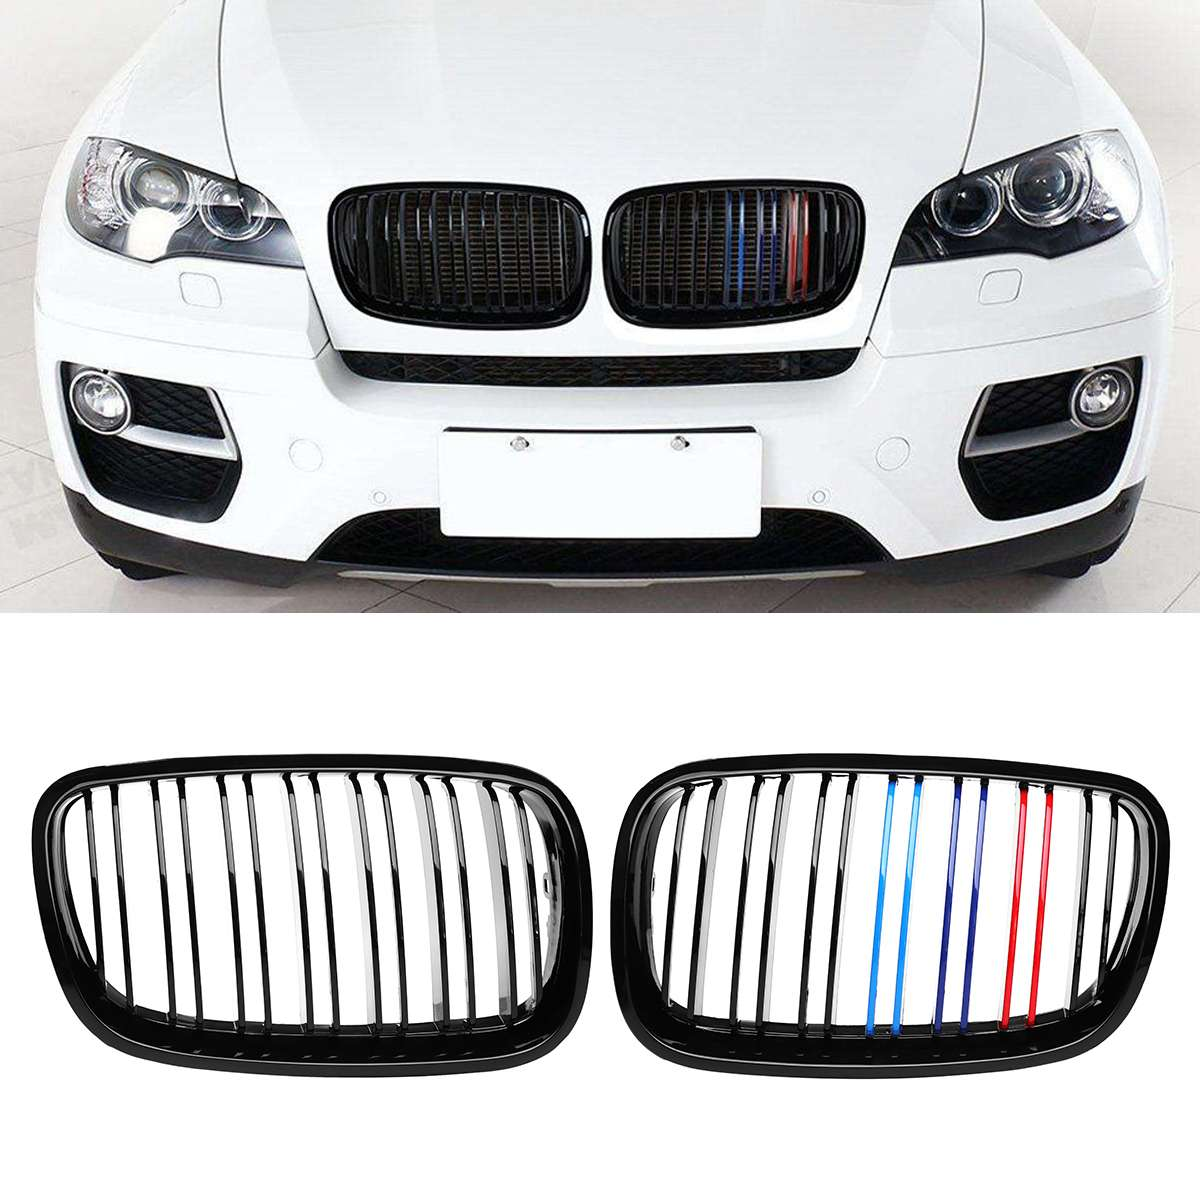 Glossy Black M Color A Pair Car Front Bumper Grille Grill Cover Trim Kidney For 2007 2013 For BMW X5 X6 E70 E71